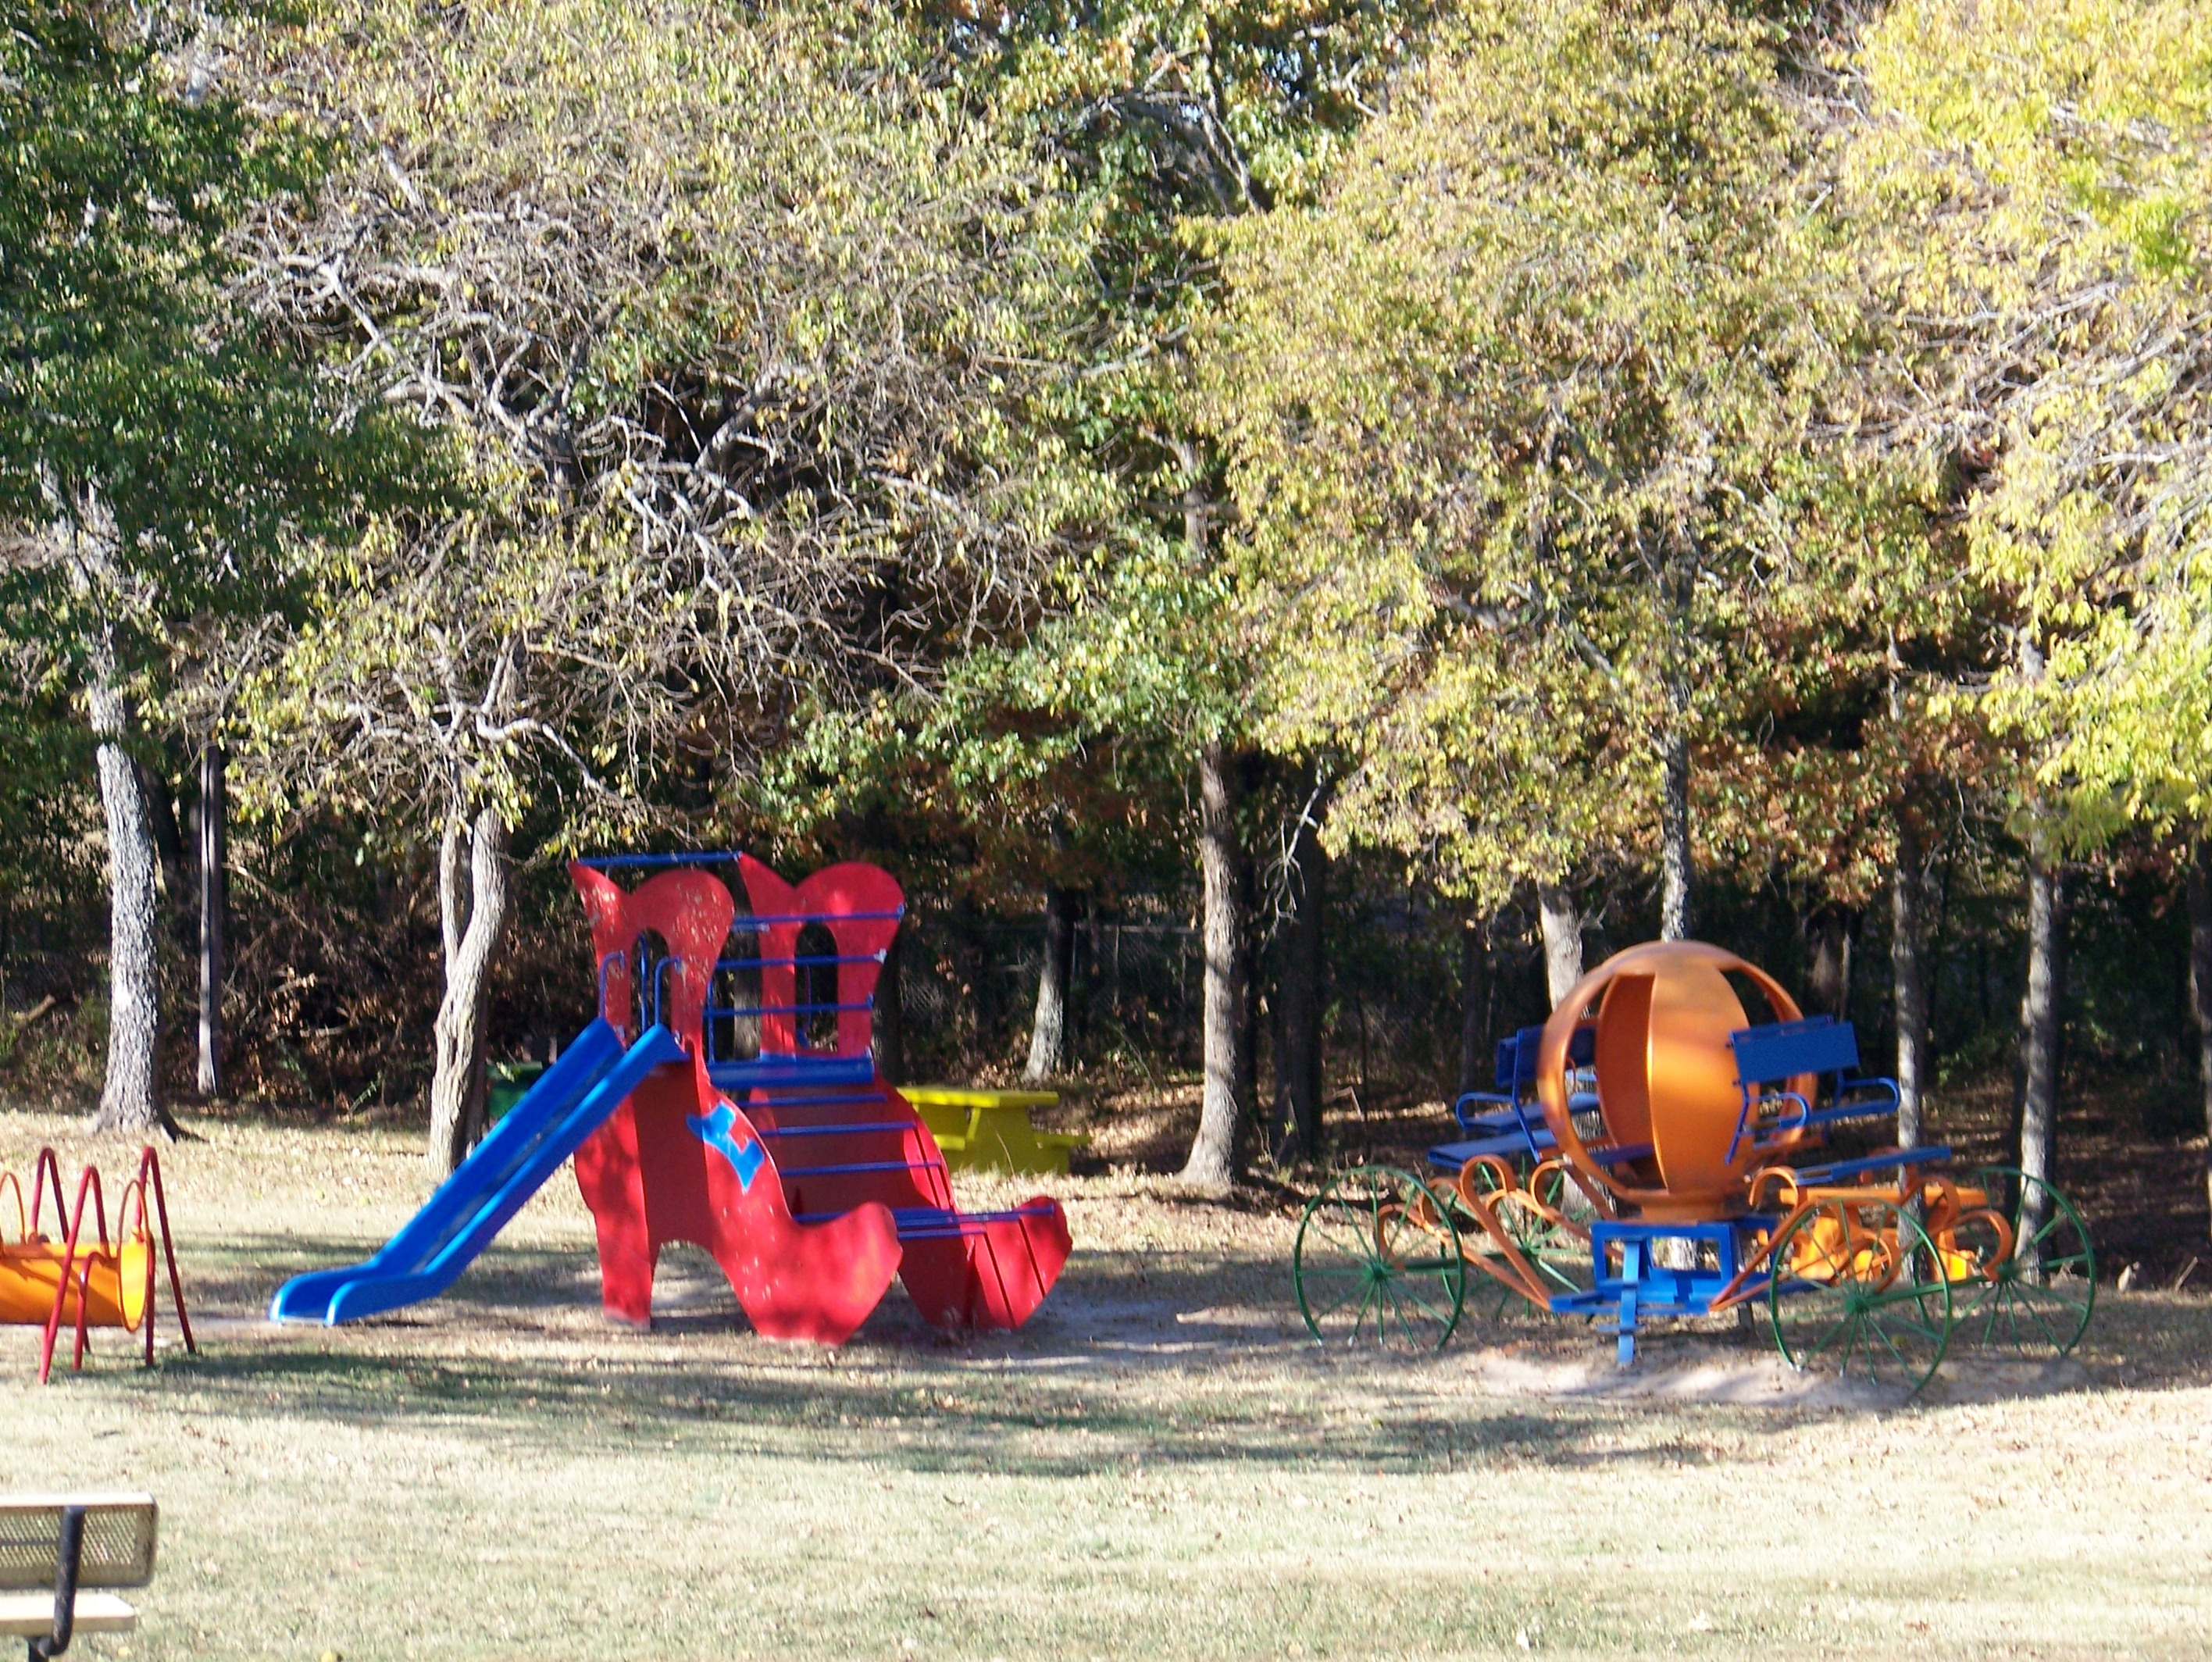 45th Infantry Park Playground Equipment